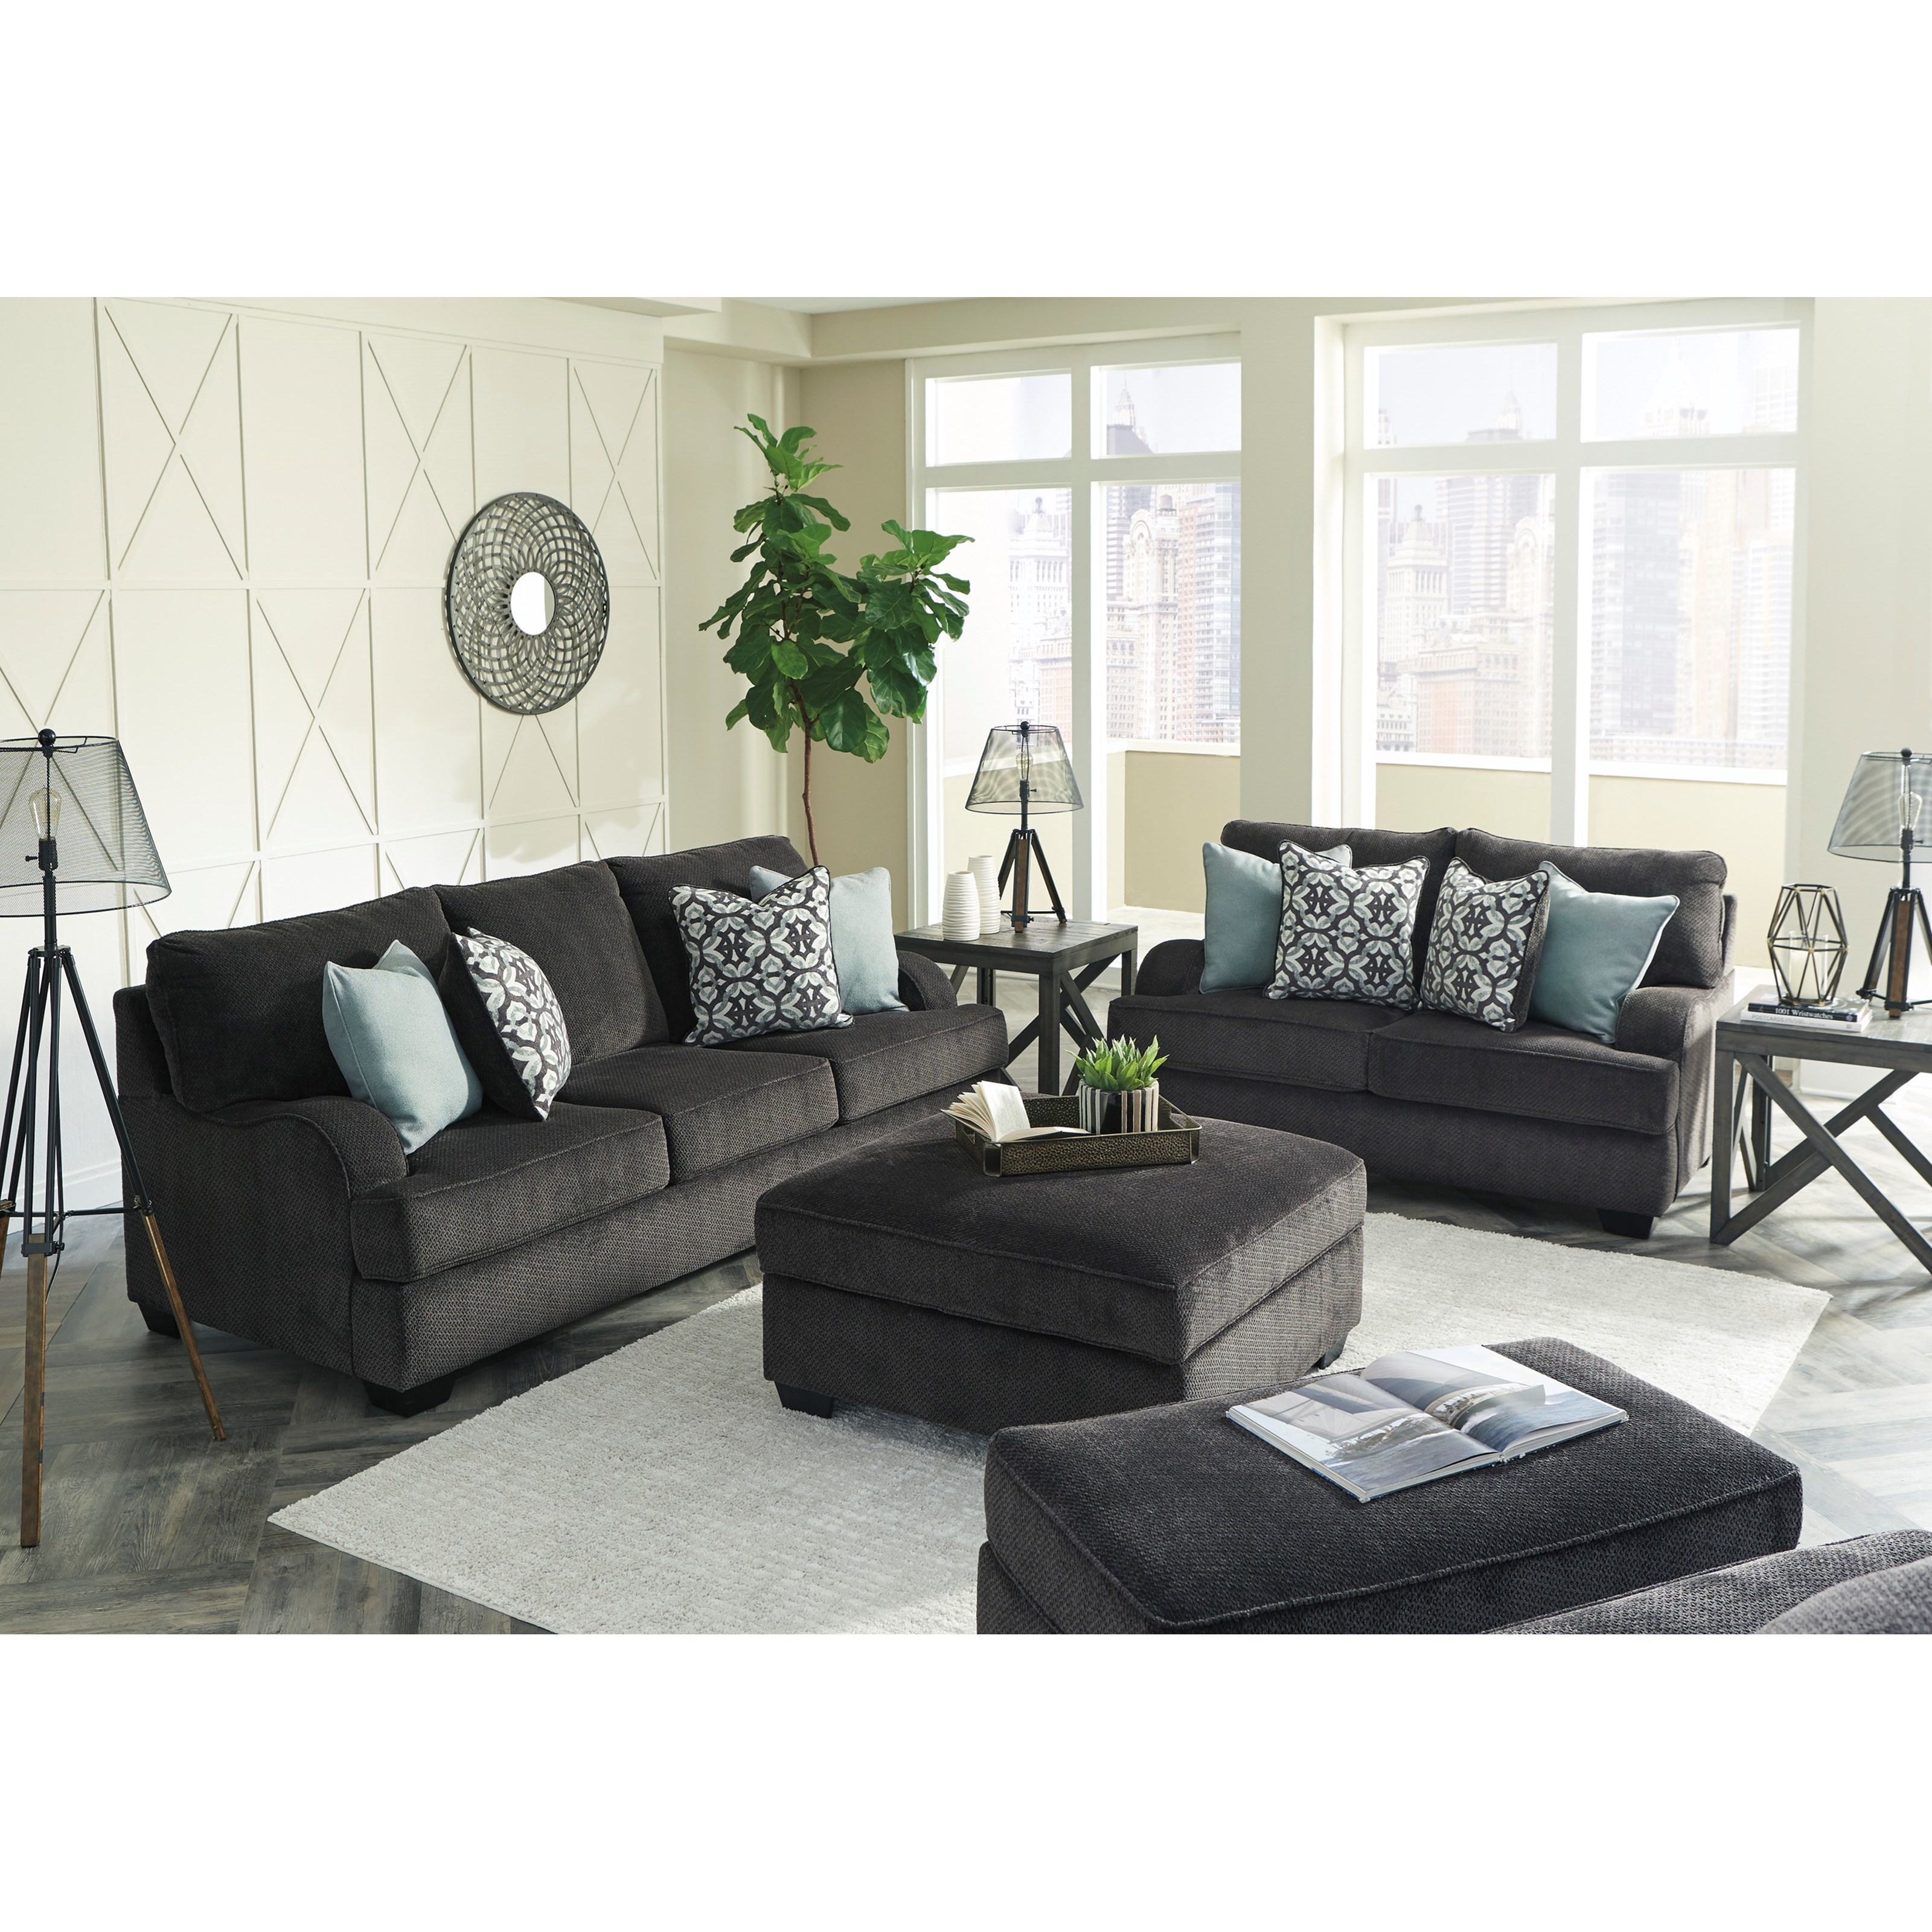 Signature Design By Ashley Charenton Queen Sofa Sleeper